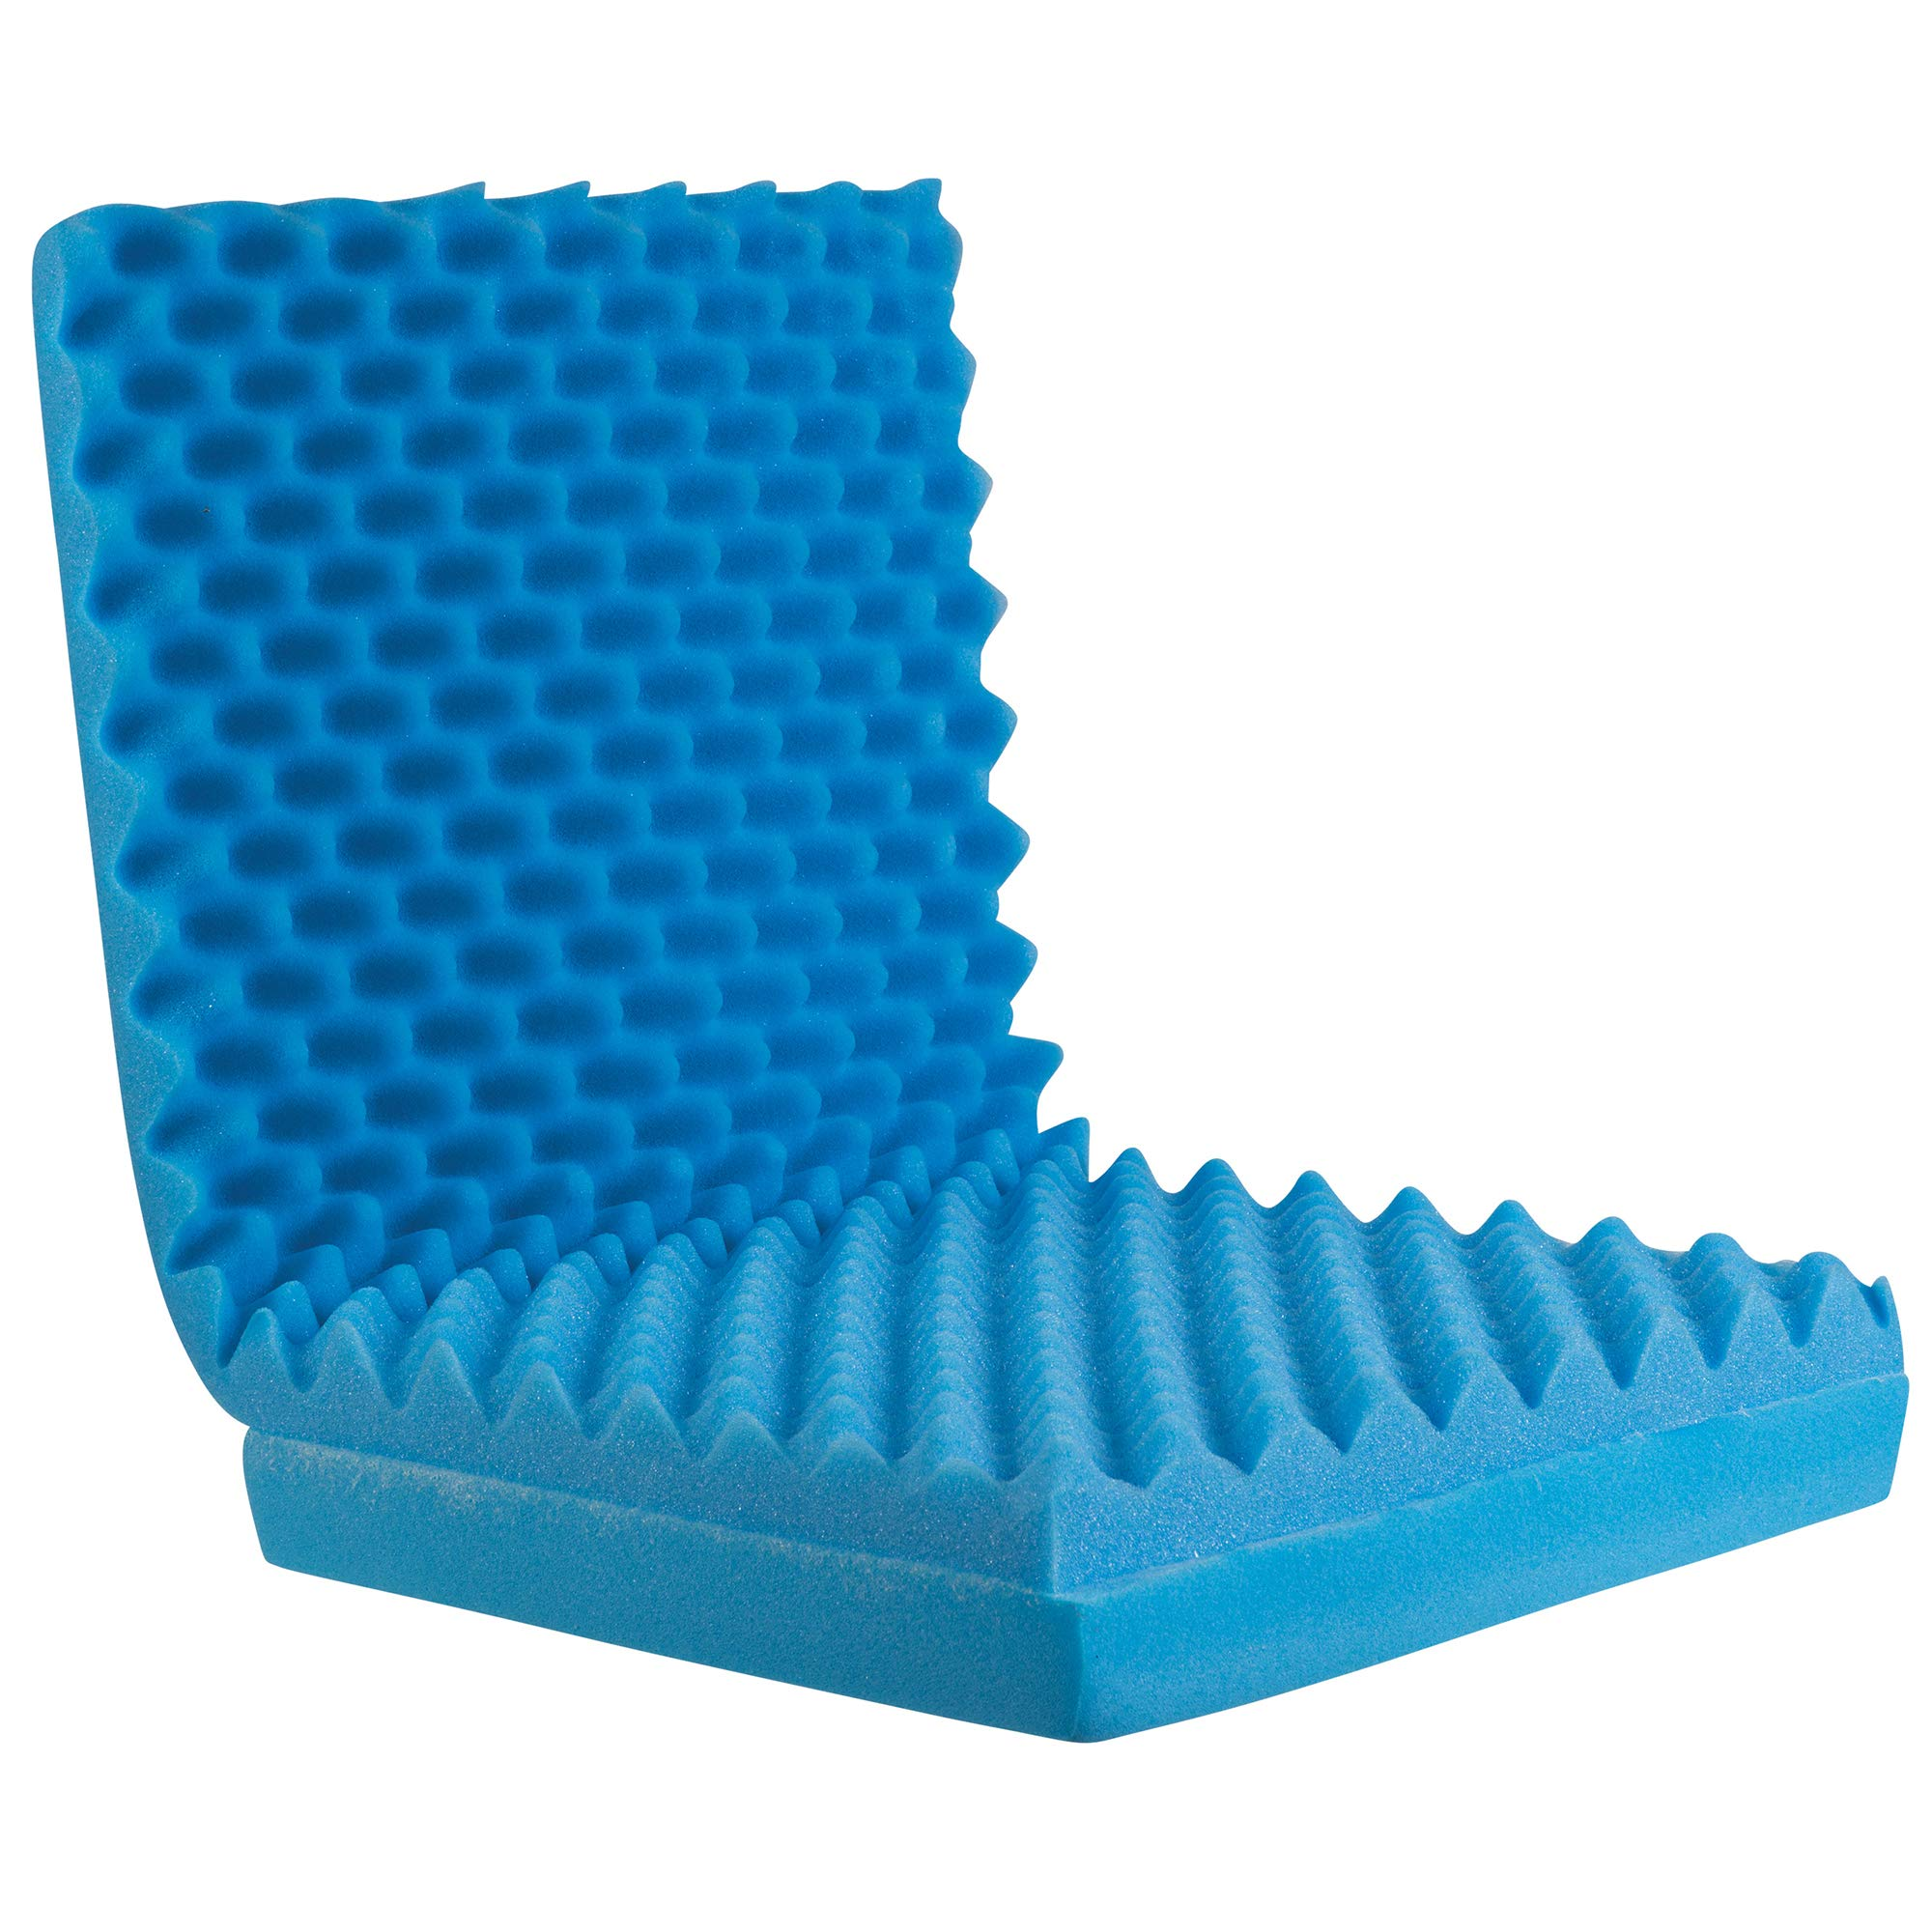 Egg Crate Sculpted Foam Seat Cushion with Full Back, Blue by DMI